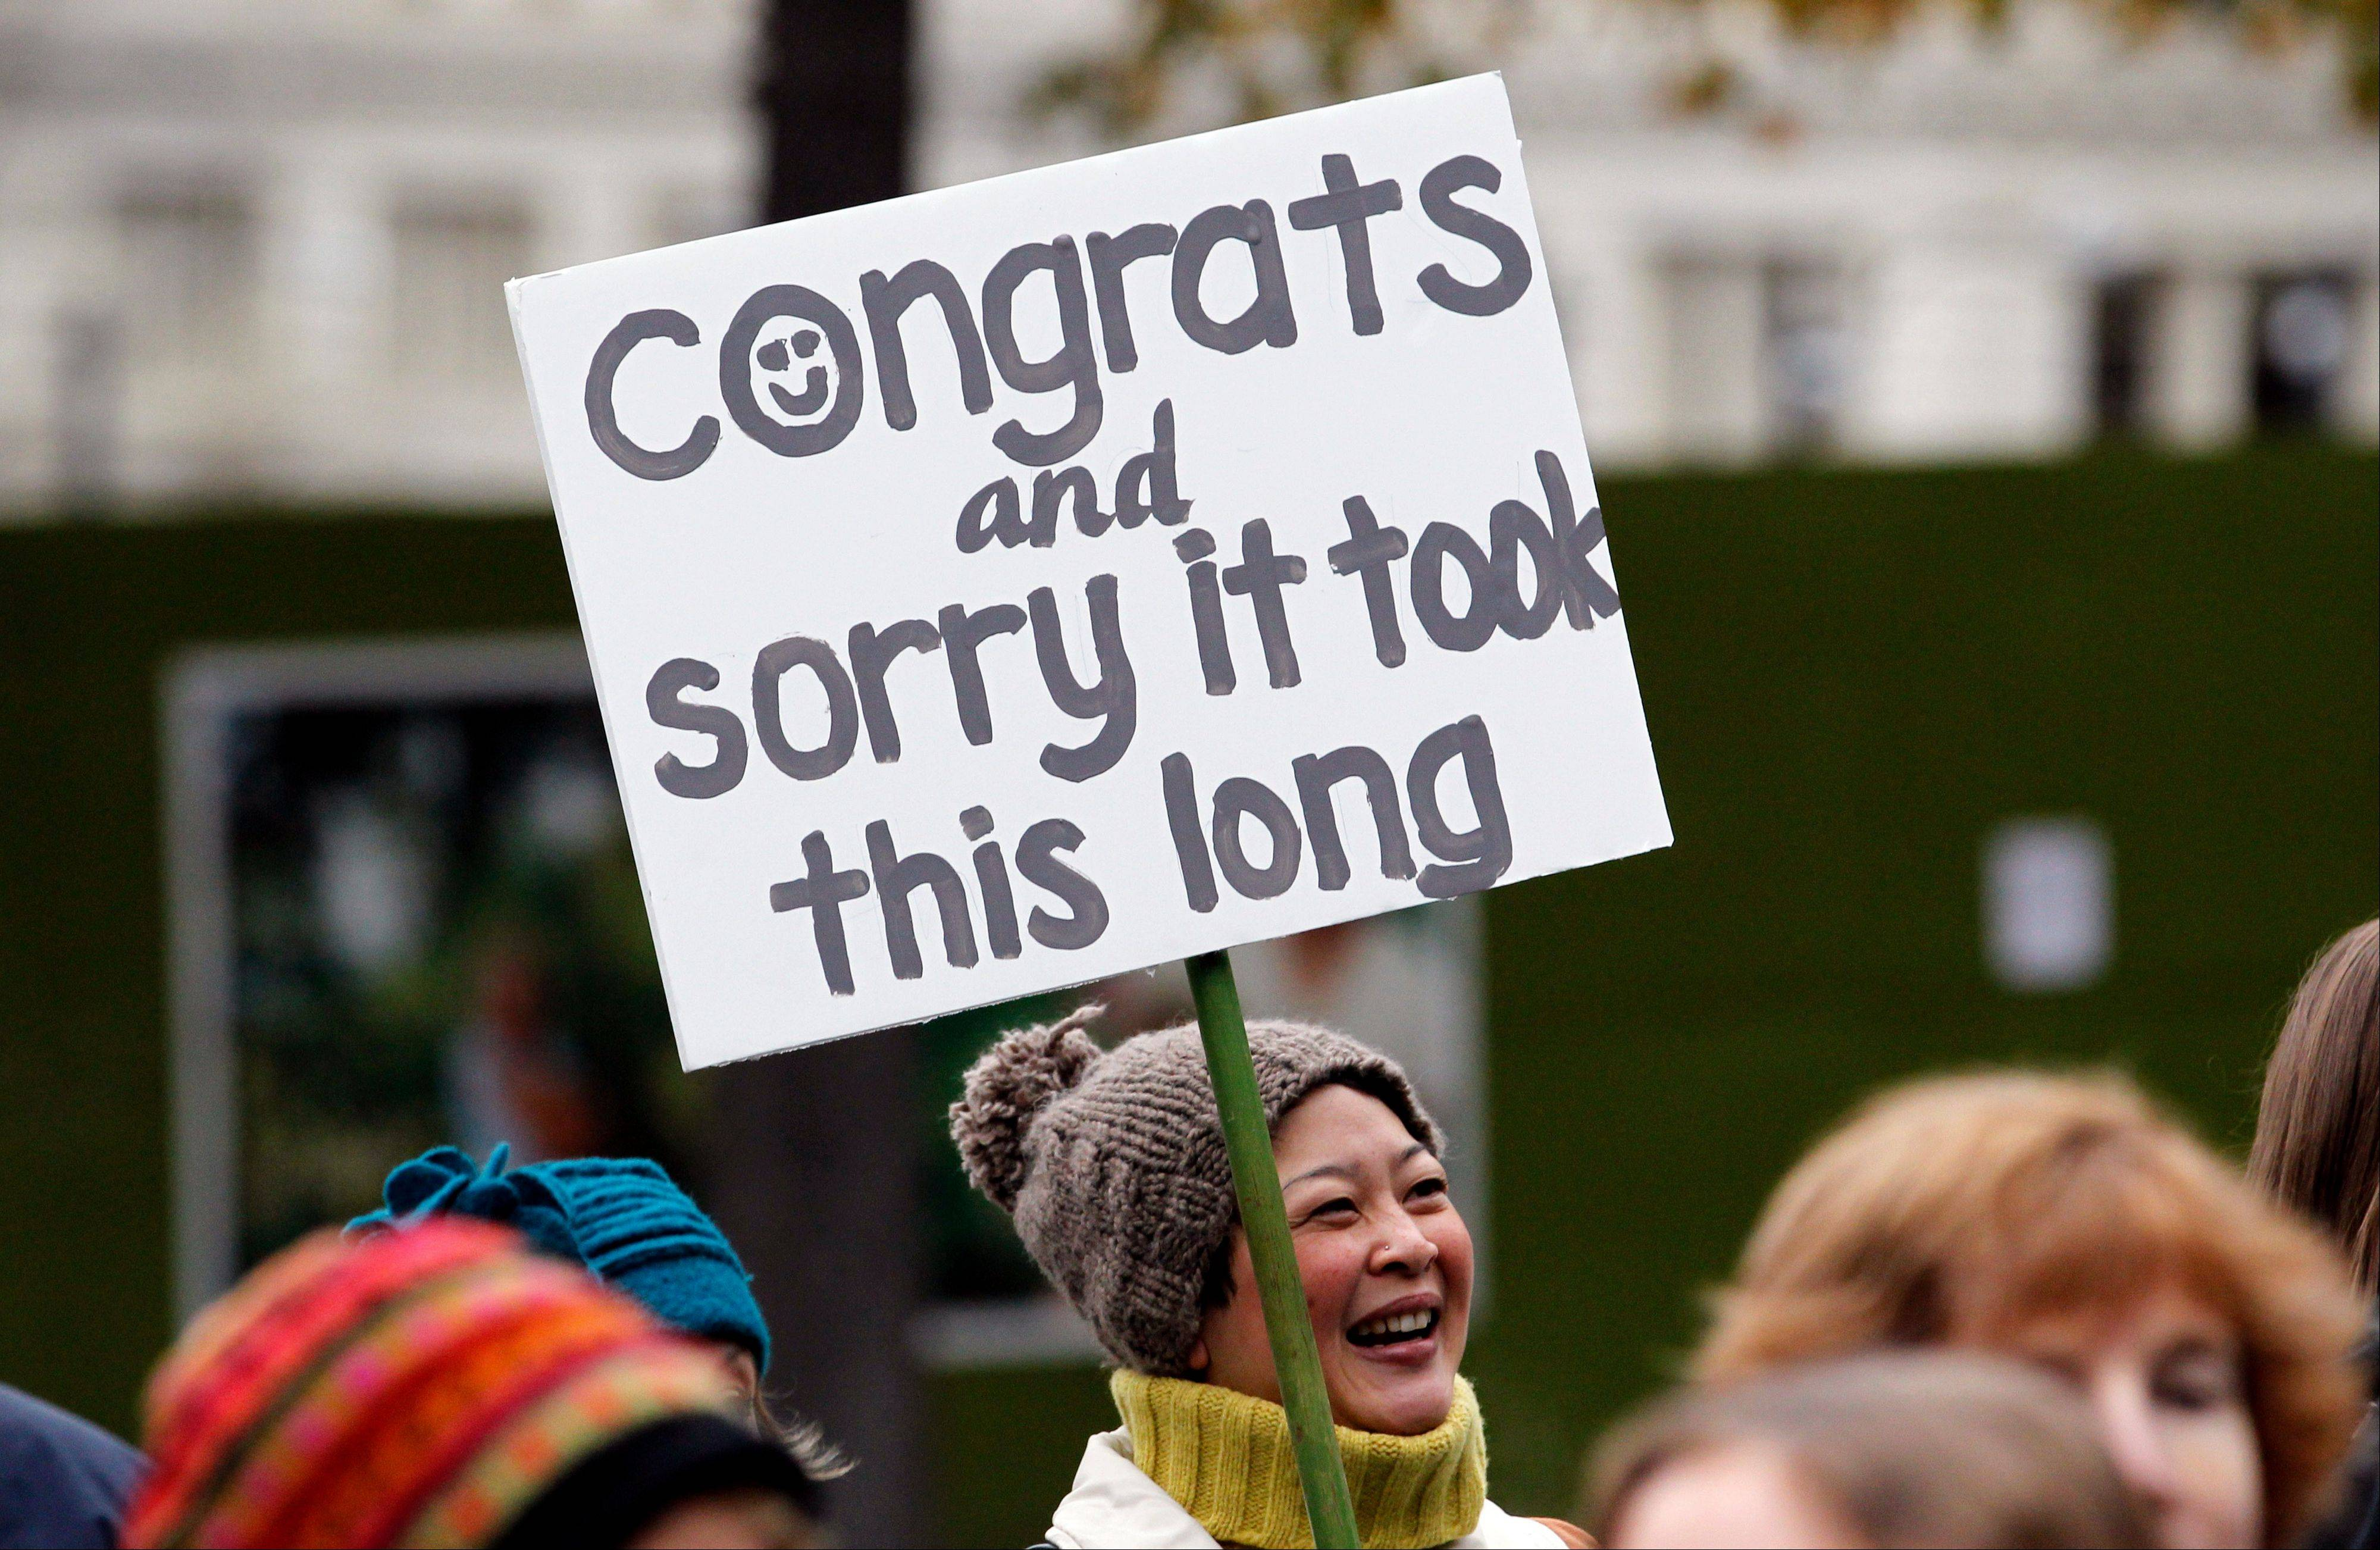 Cindy Ogasawara stands with other well-wishers greeting newly married couples as they depart Seattle City Hall Sunday. Washington state Gov. Chris Gregoire signed a voter-approved law legalizing gay marriage Wednesday, and weddings for gay and lesbian couples began Sunday.